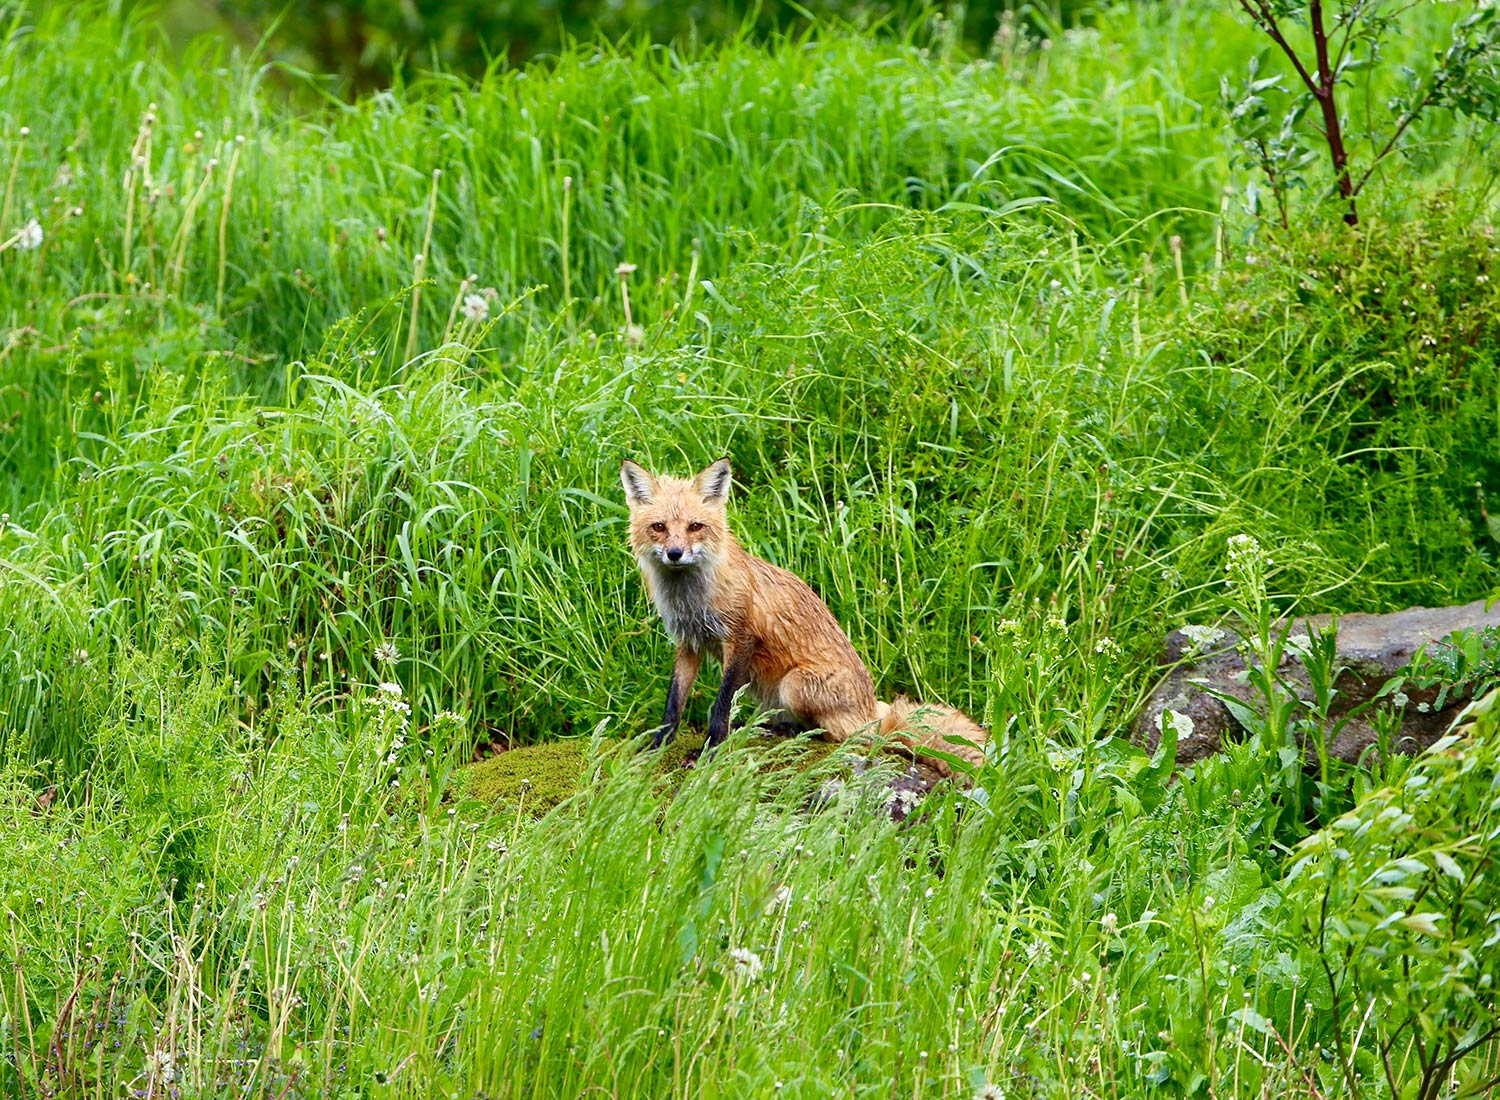 Sanctuary at SHO: redefining animal agriculture | partnering with wildlife, like this red fox, to steward non-harming perennial food systems while ensuring safe & healthy habitat